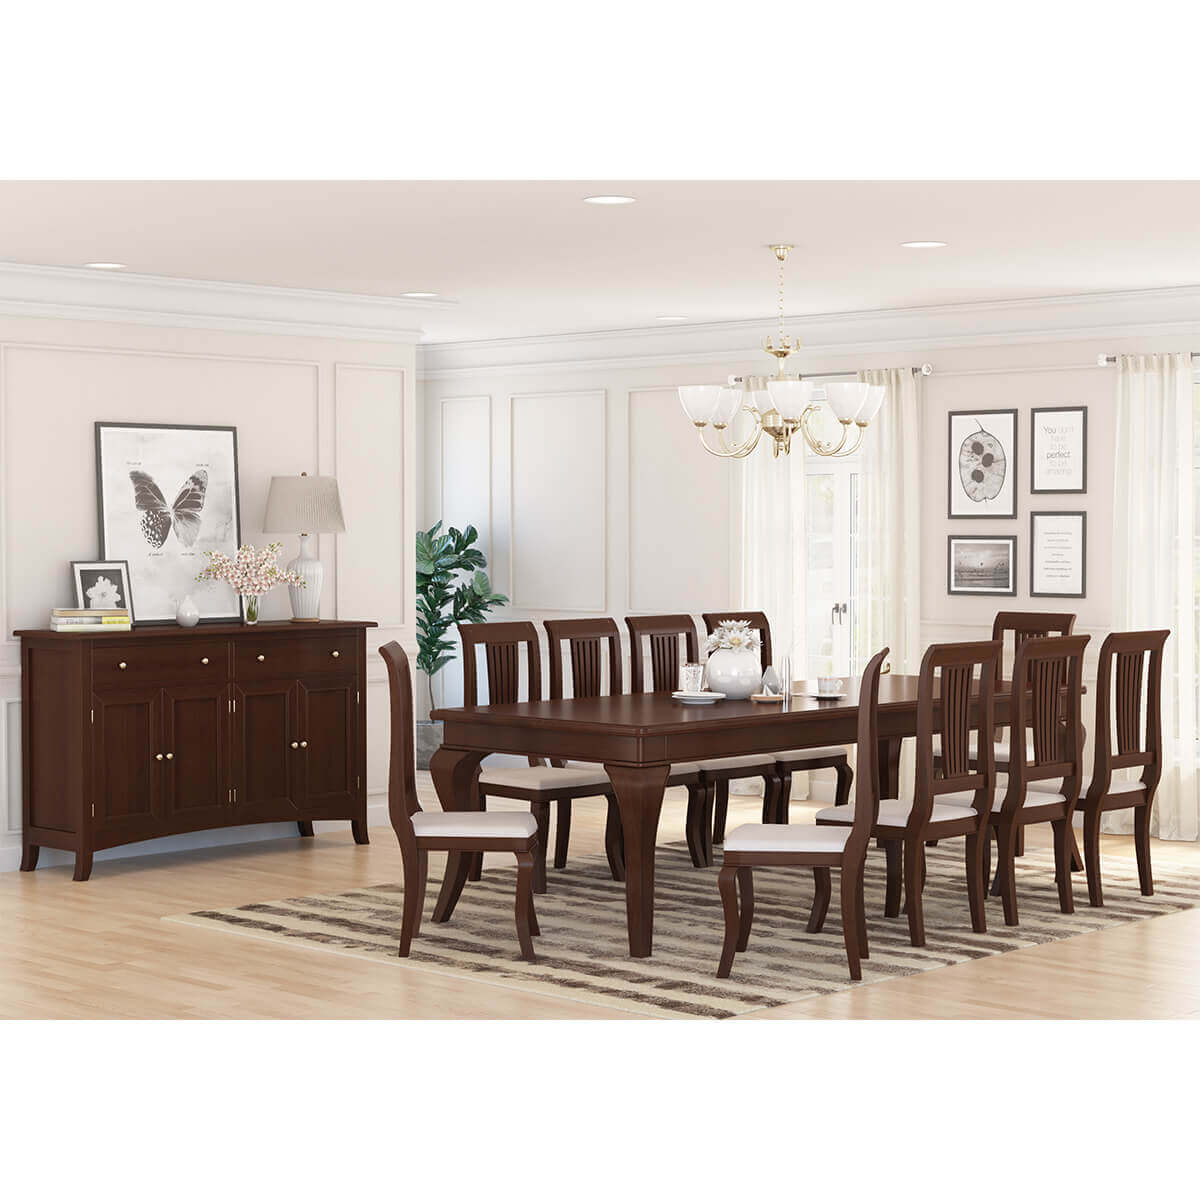 Dining Room Set For 12: Cromberg Solid Mahogany Wood 12 Piece Dining Room Set